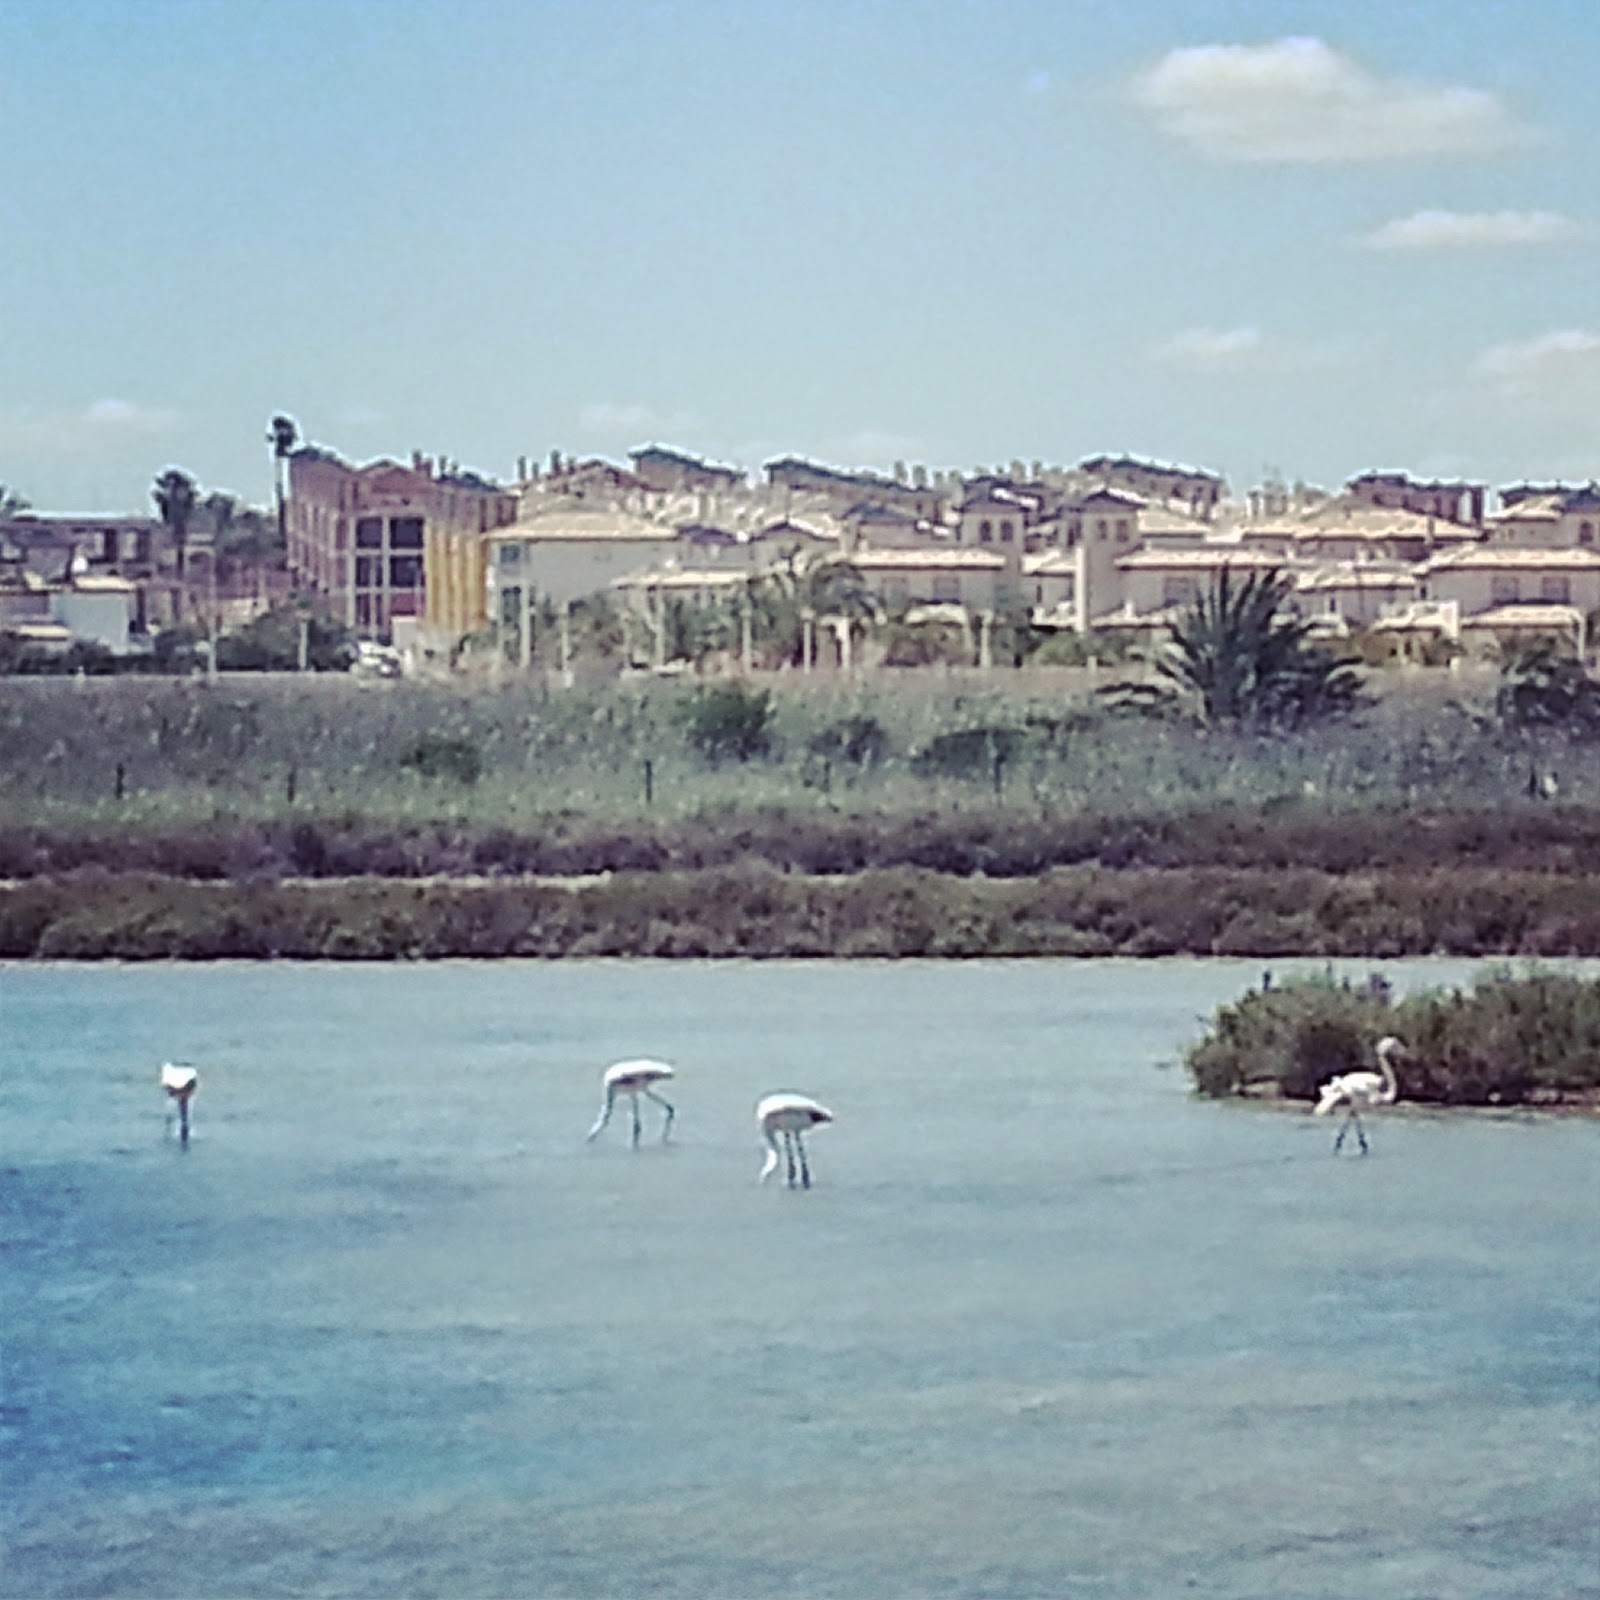 flamingos-la-marina-spain